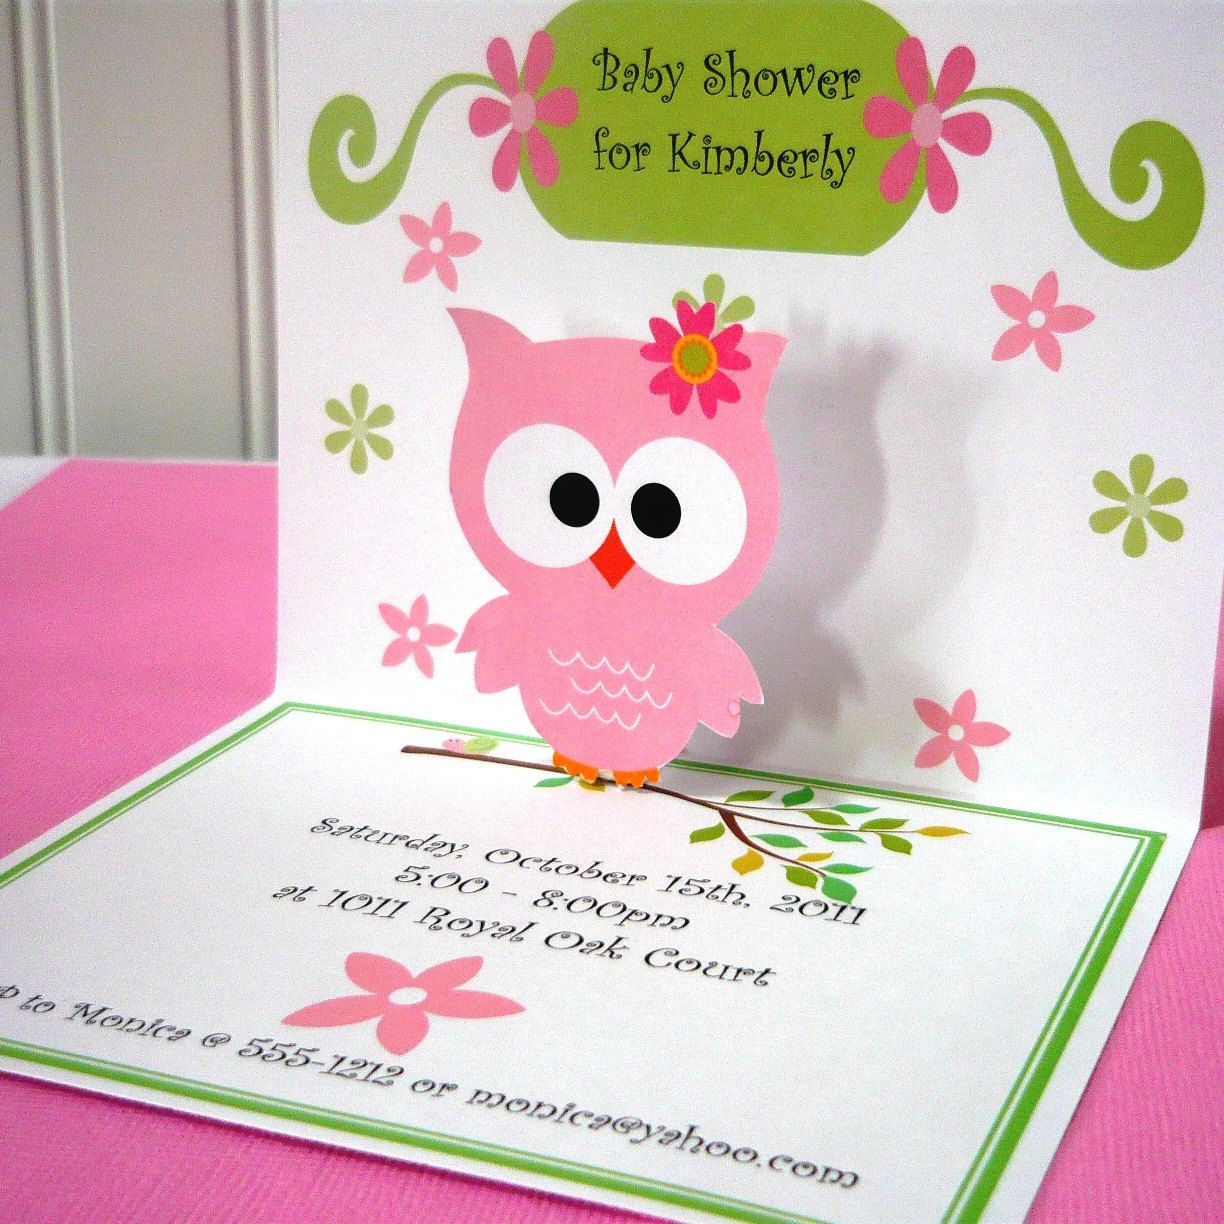 Owl invitations pop up used for first birthday or baby showers